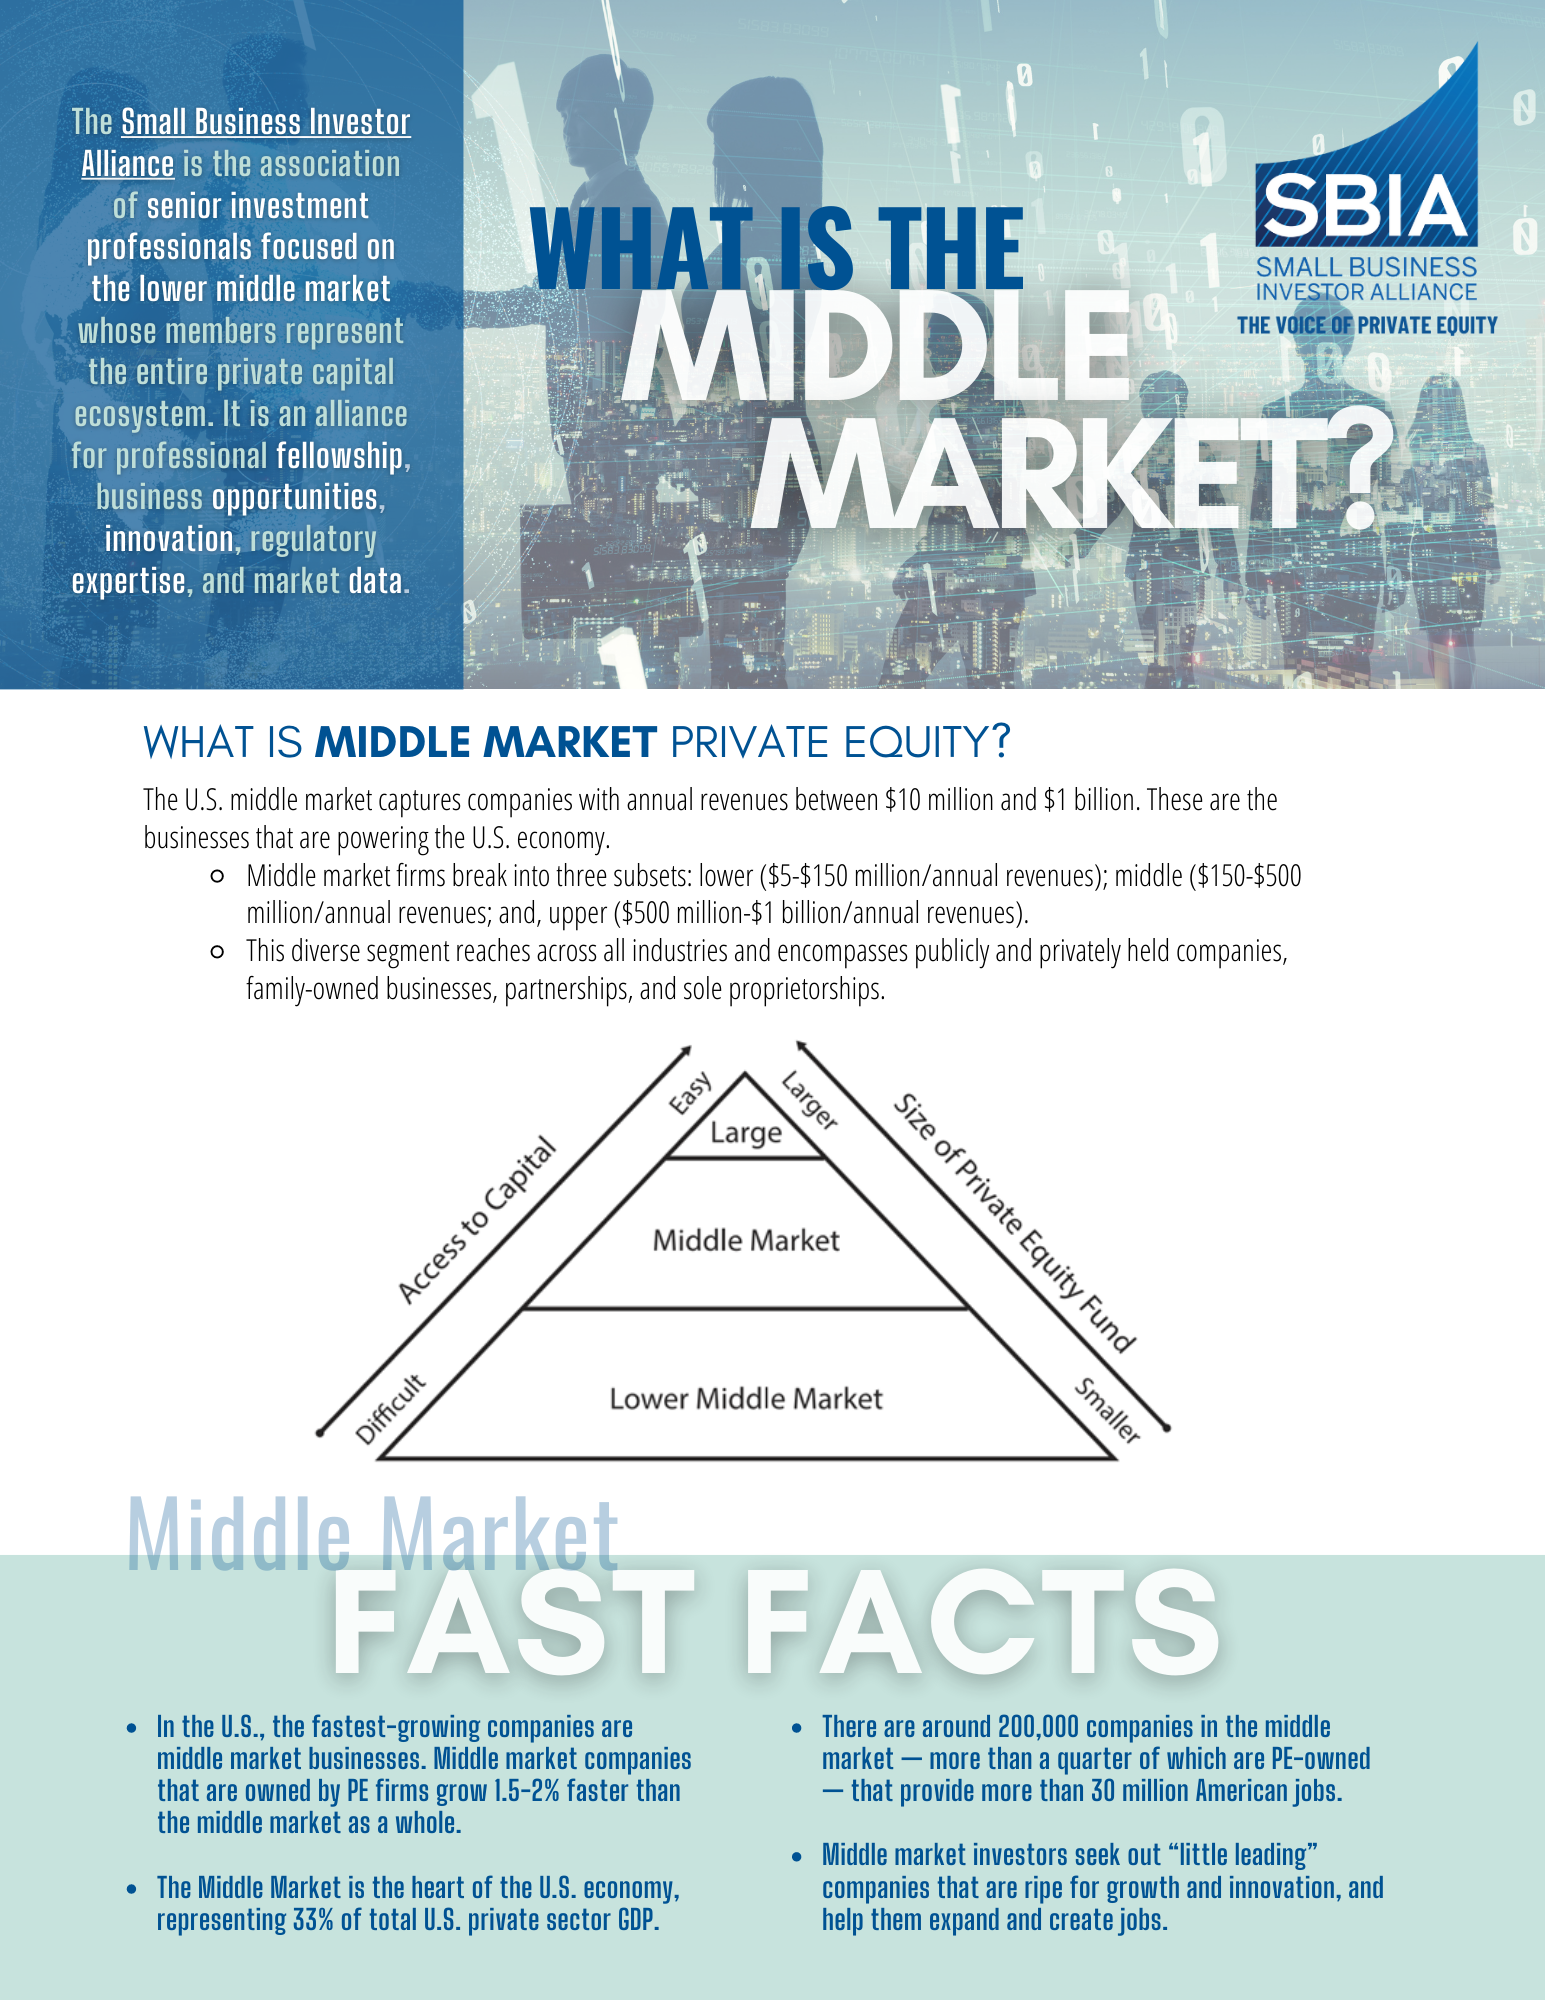 Middle Market facts